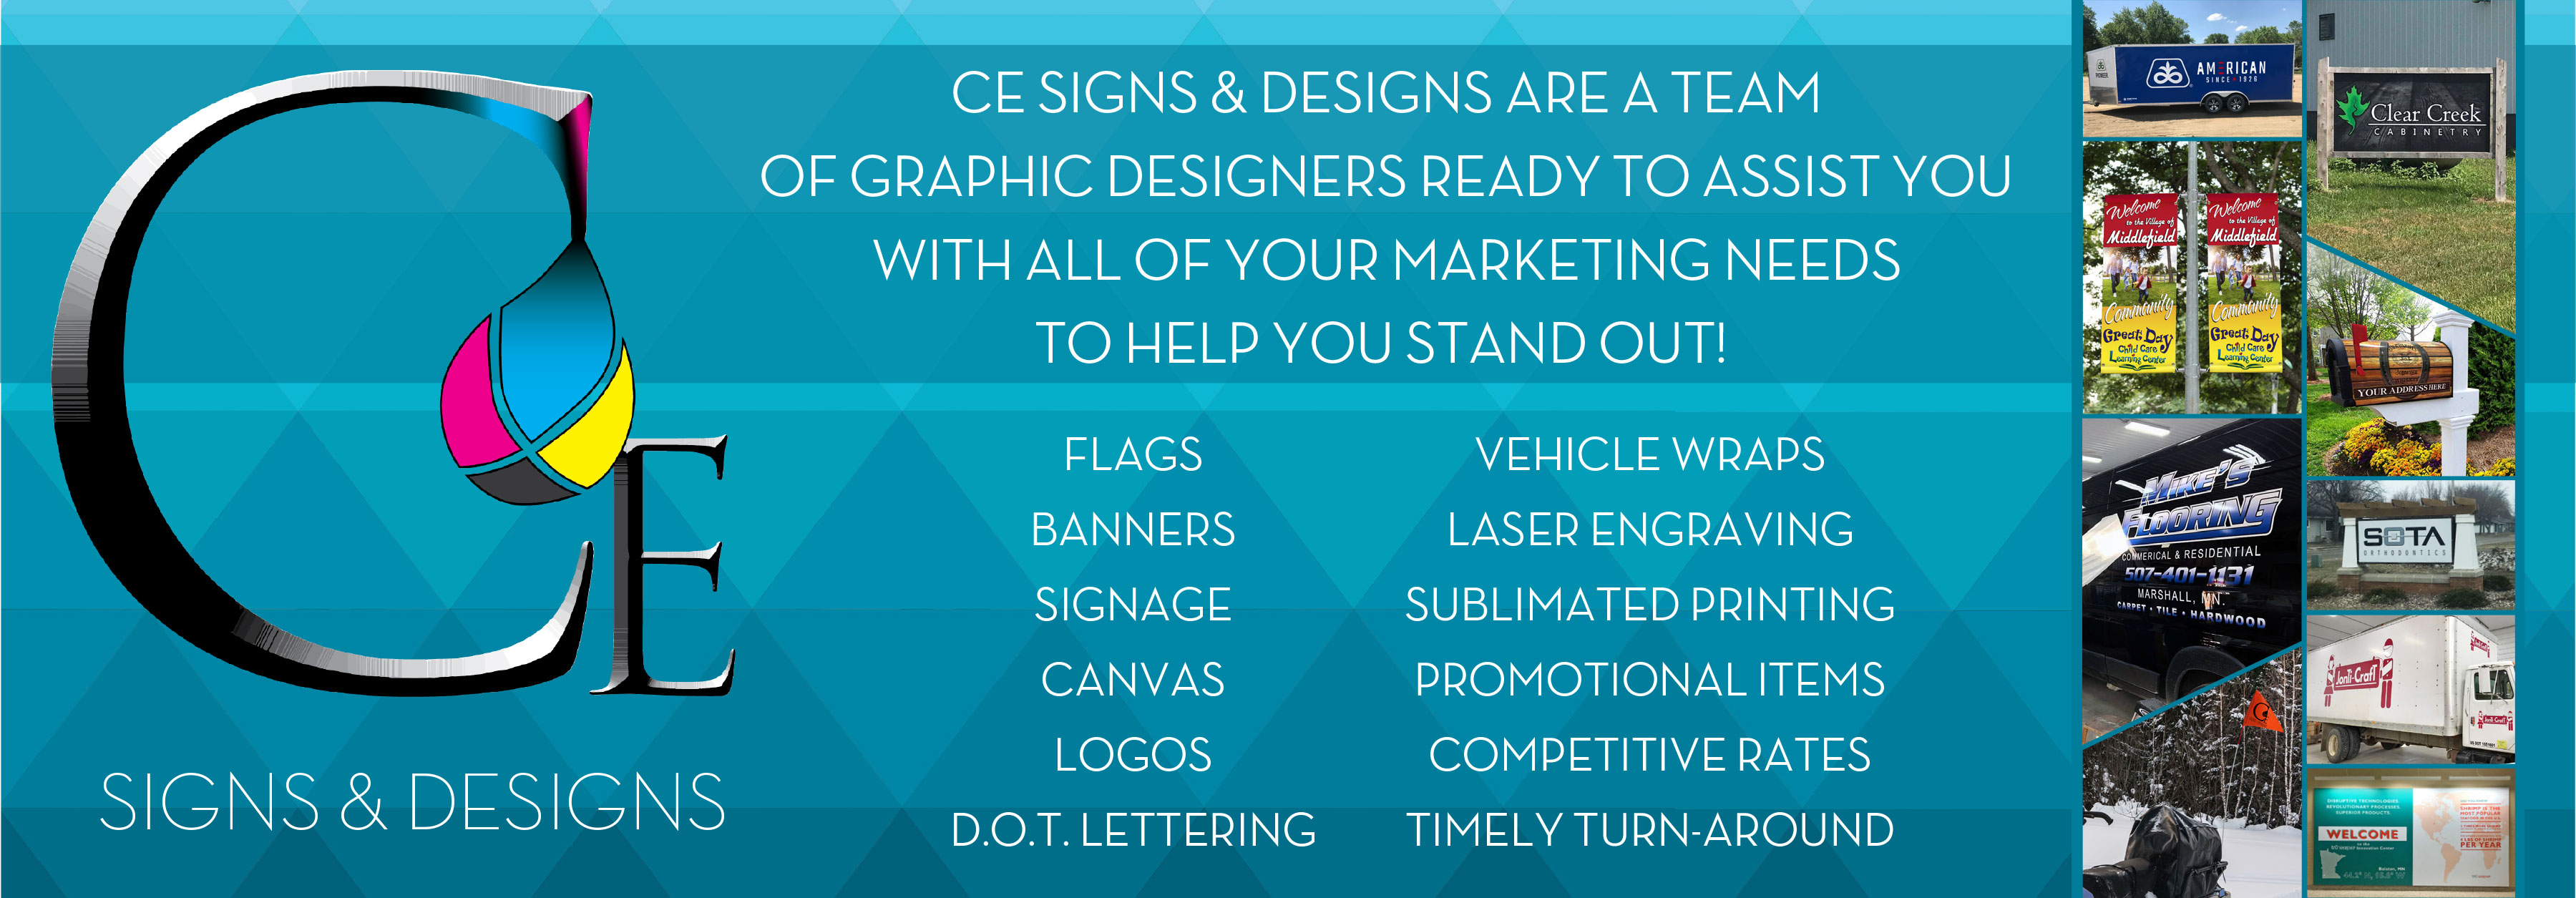 CE Signs & Designs Home Page